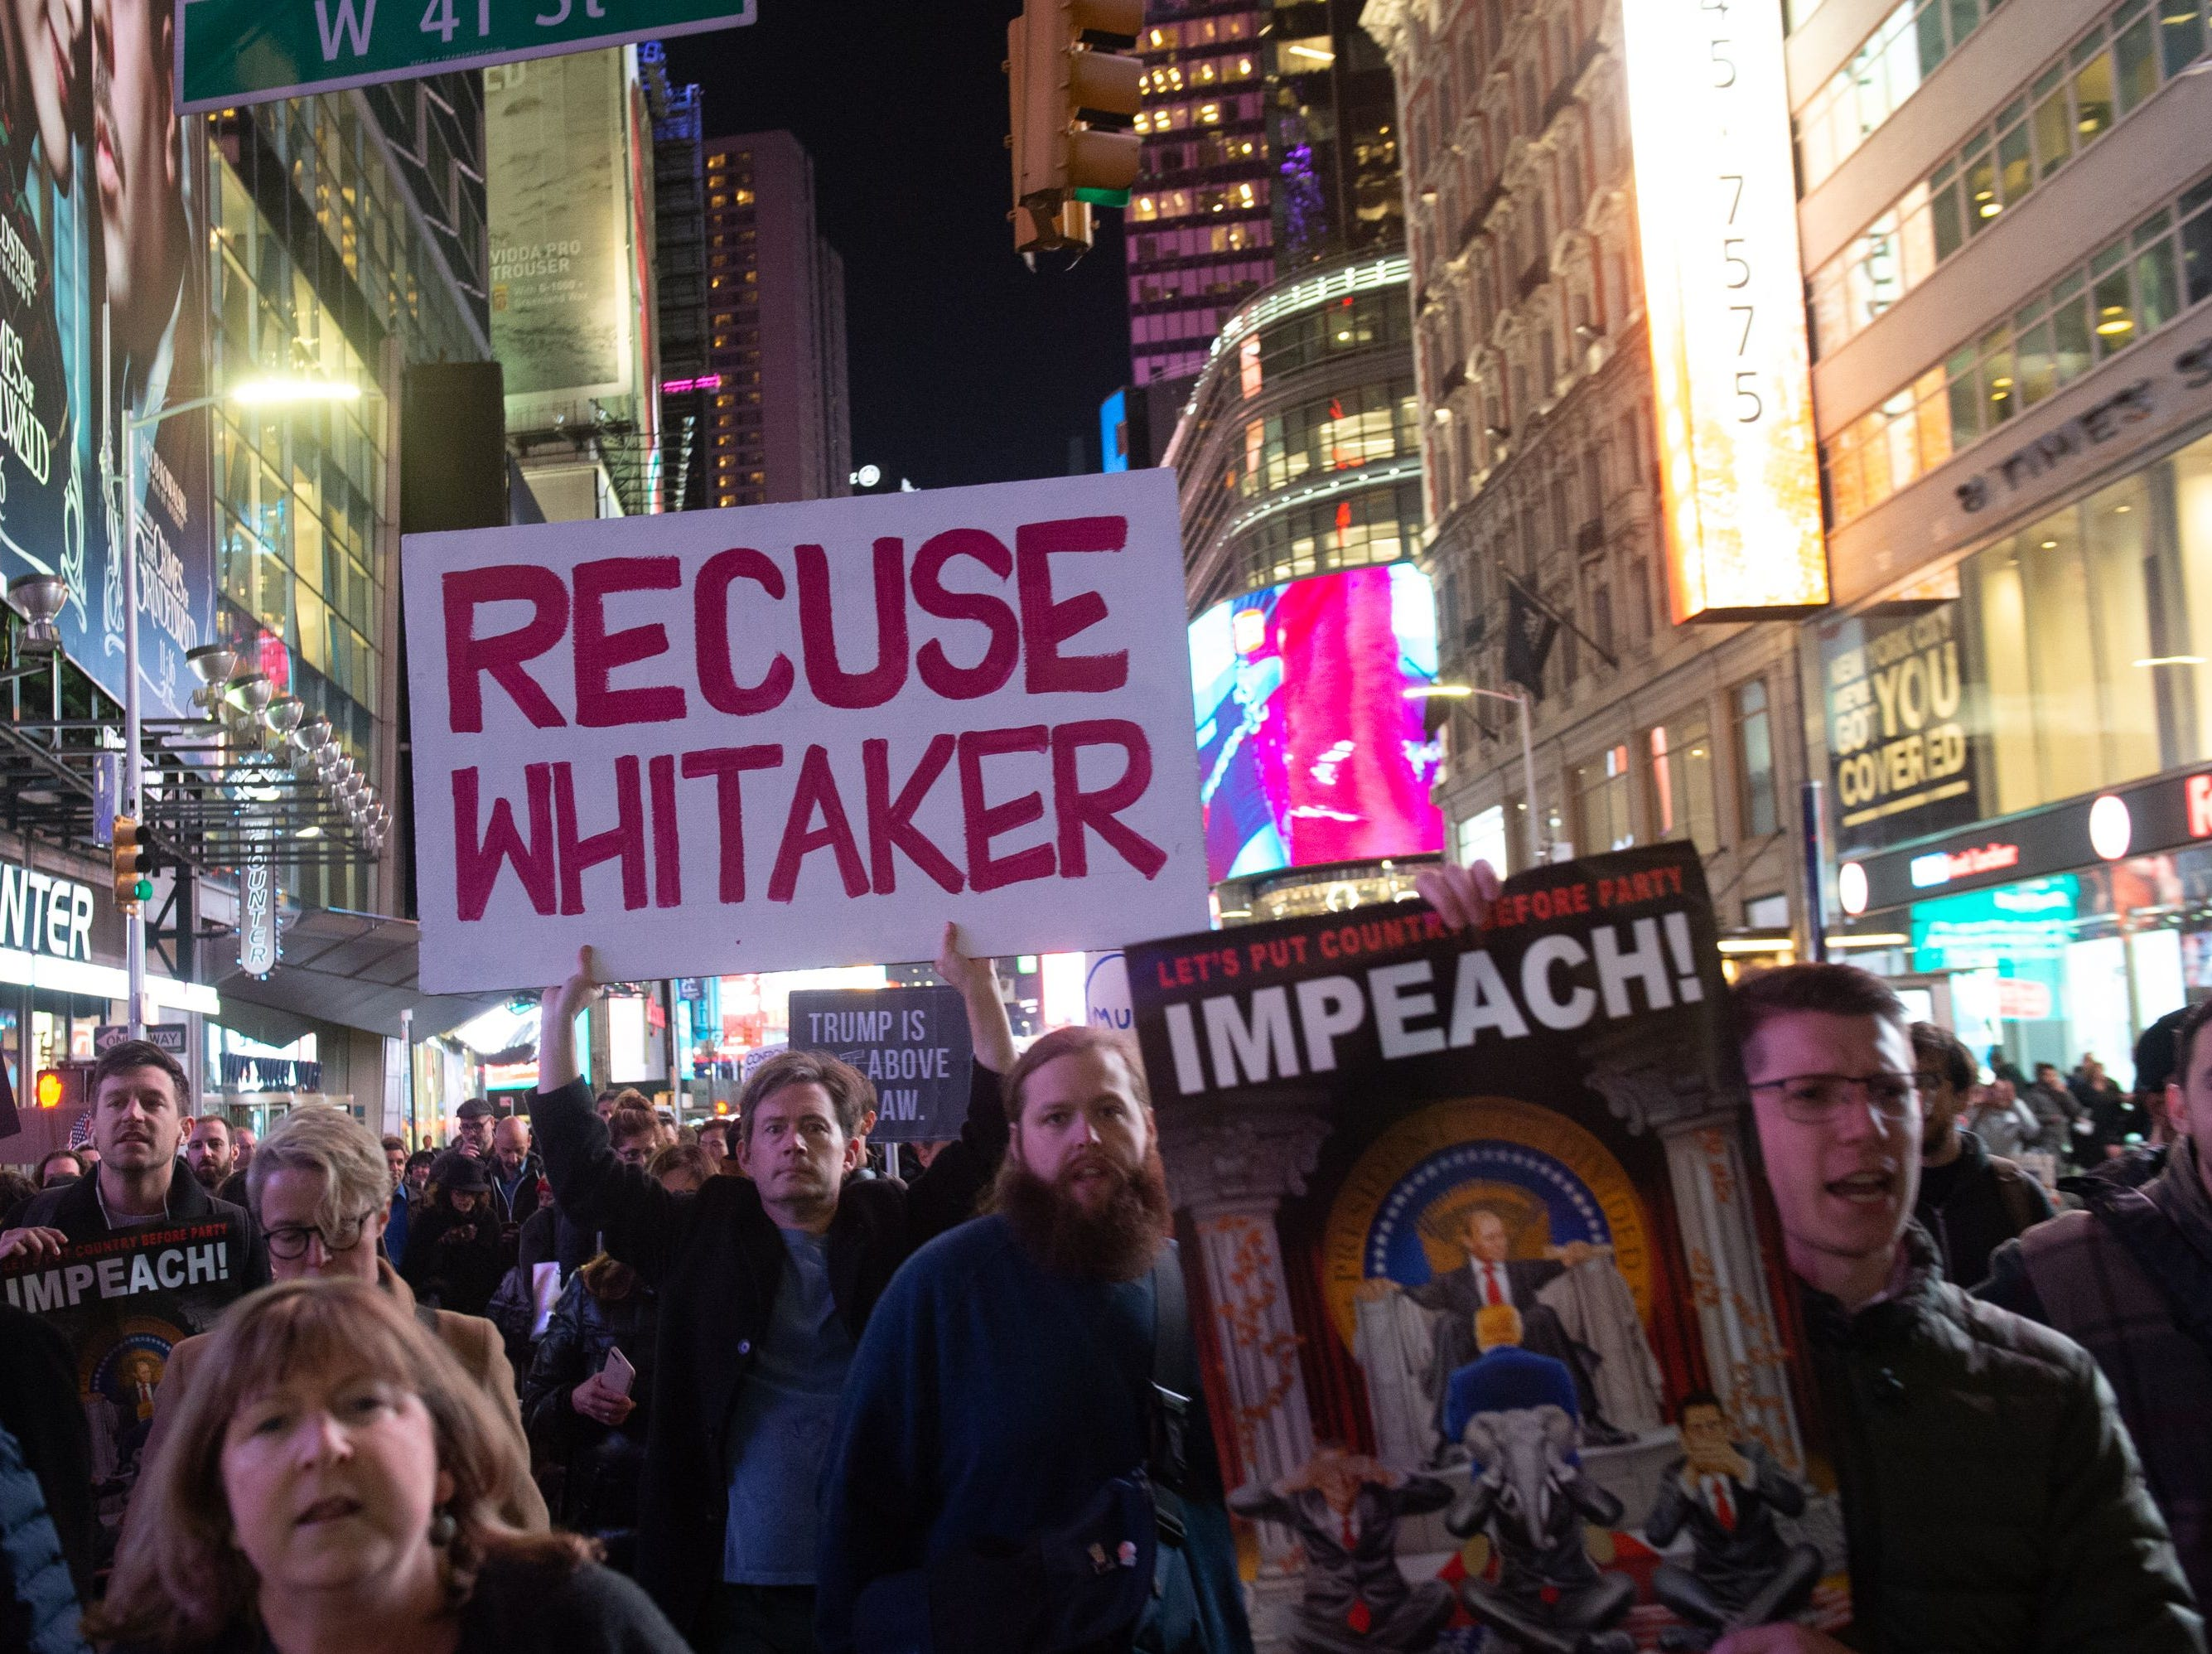 People protest and march against US President Donald Trump's alleged interference in Robert Mueller investigation in New York City on November 8, 2018.